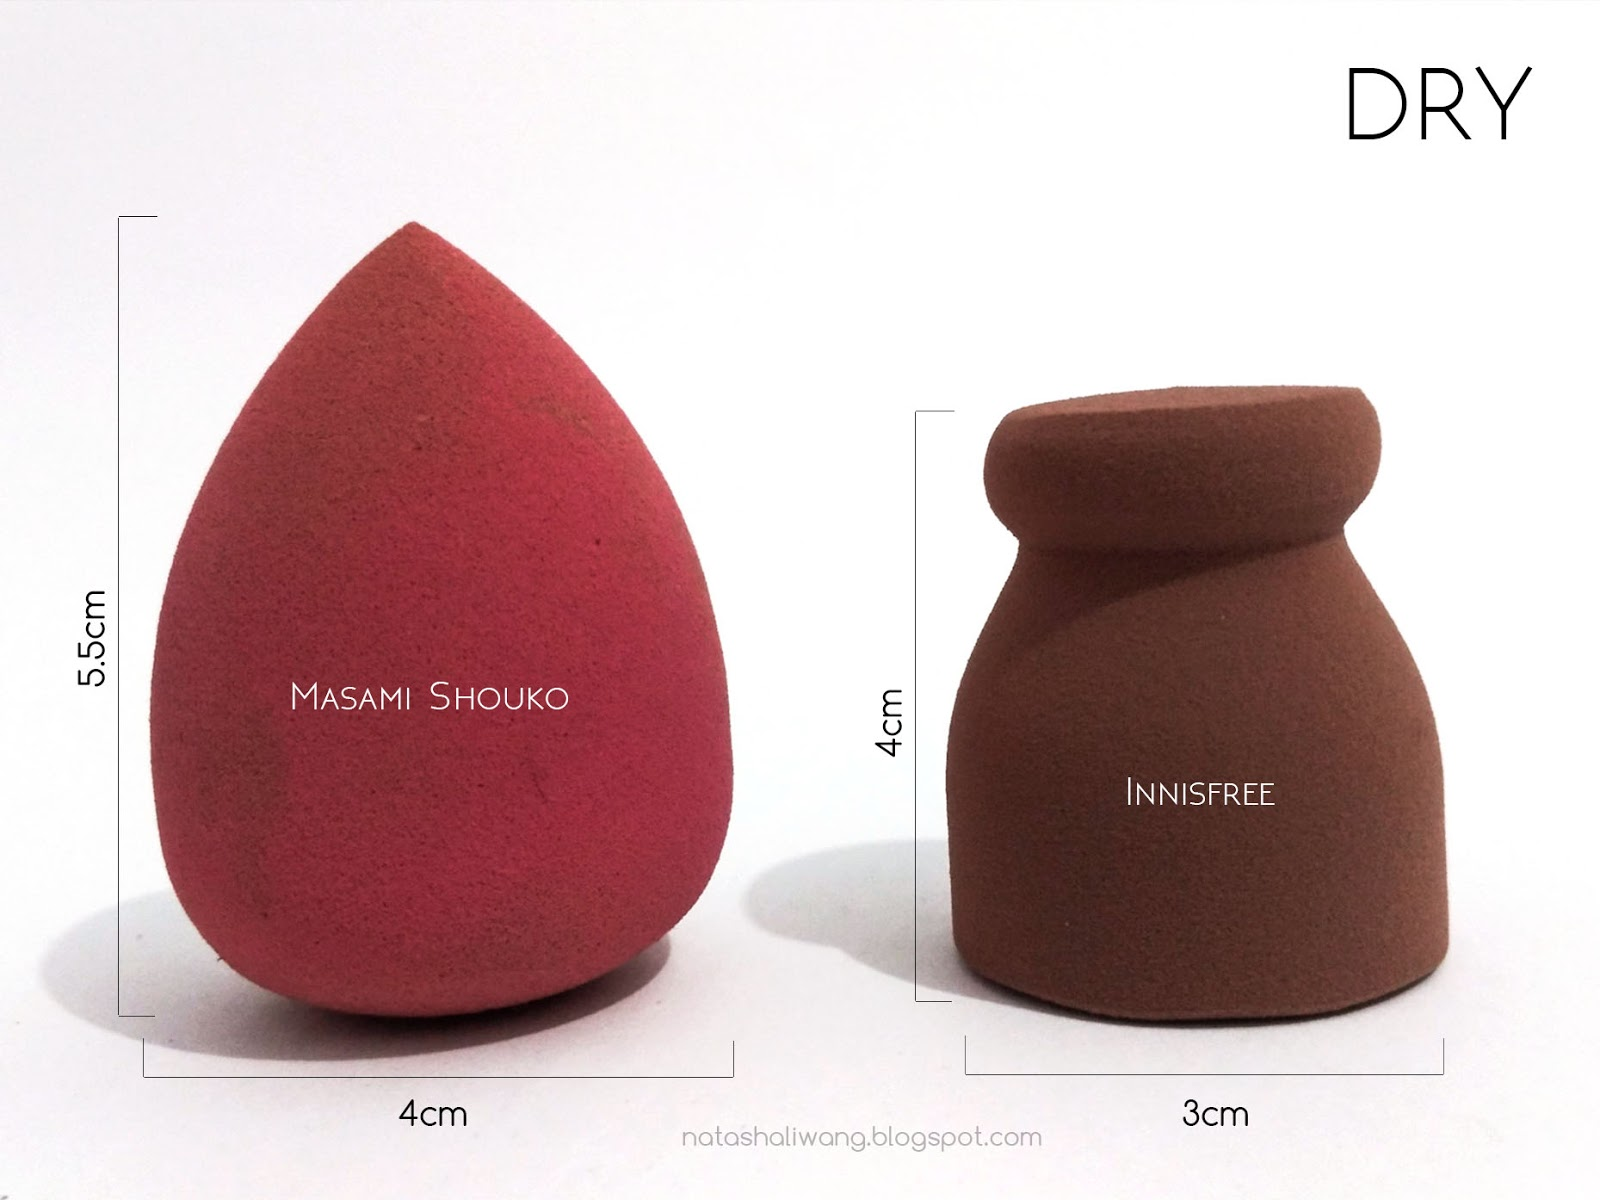 Review Battle Of The Dupes Masami Shouko Beauty Blender Vs Innisfree Cover Stamping Puff